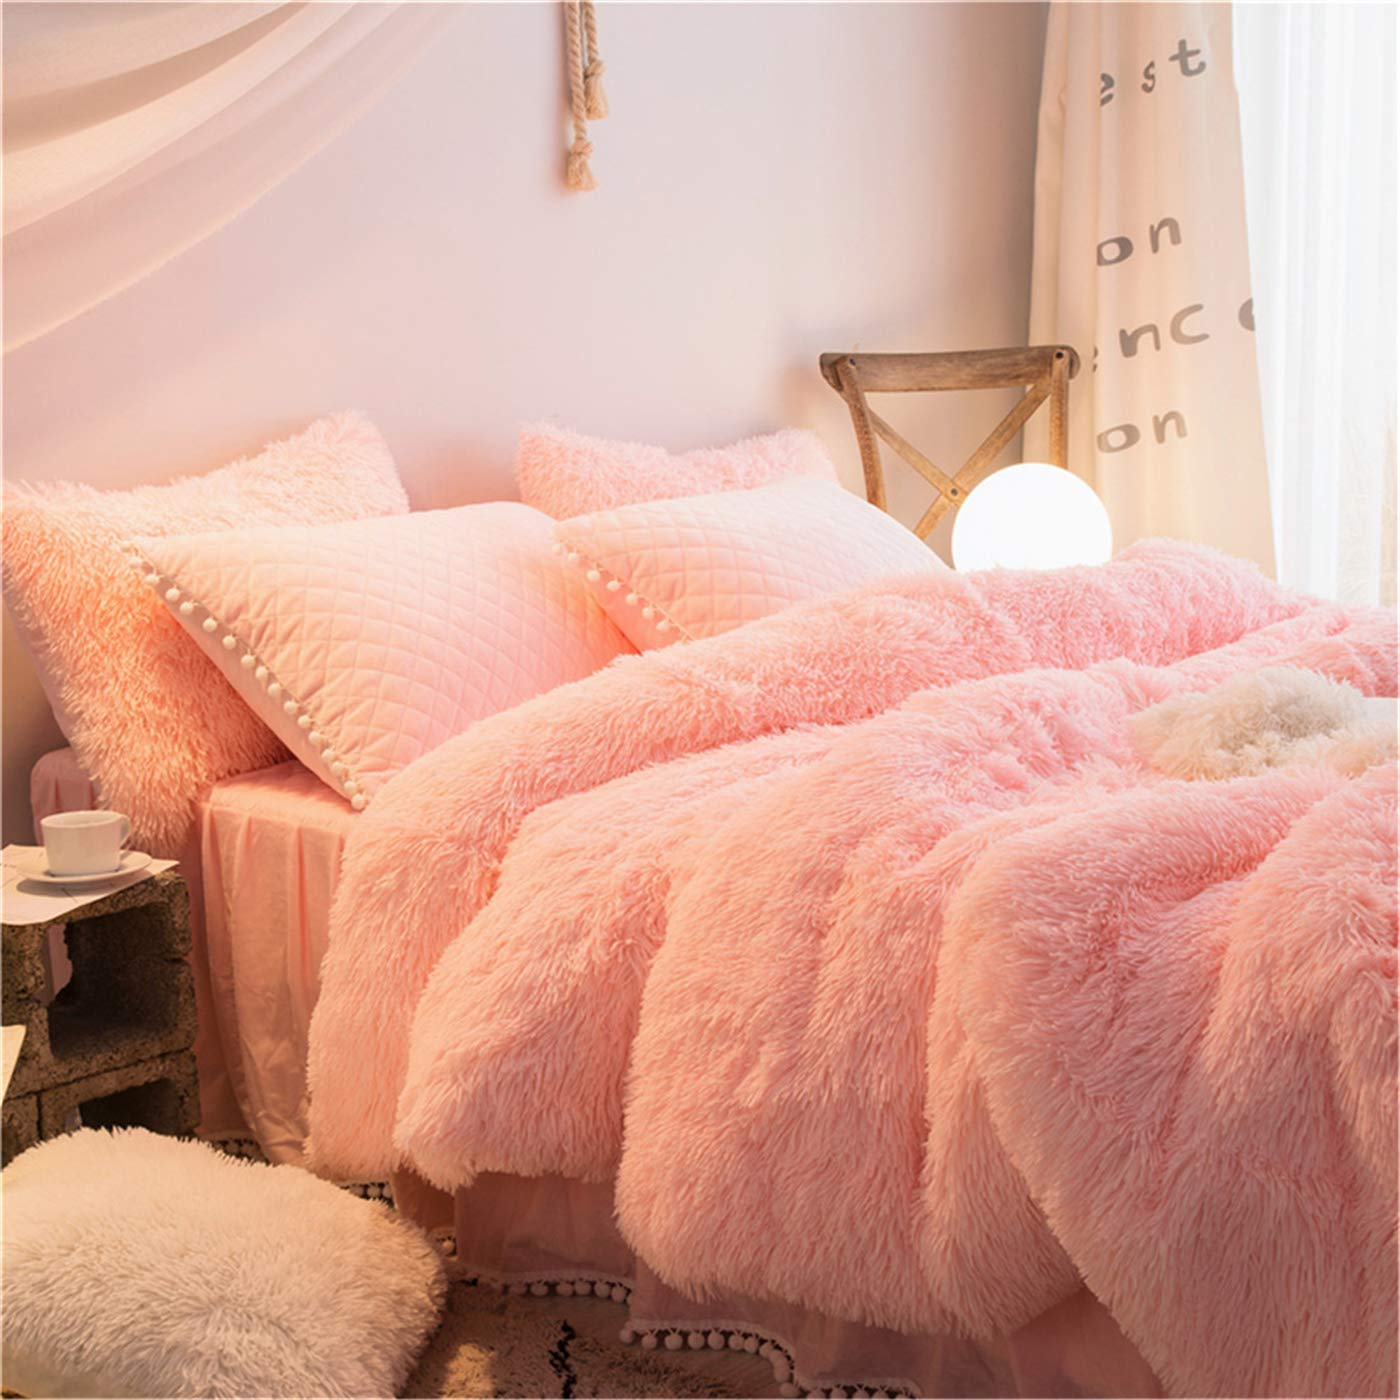 MooWoo 1 PCS Super Soft Shaggy Plush Flannel Duvet Cover, Faux Fur Fluffy Bedding, Zipper Close and Ties, No Inside Filler (Pink, Queen)